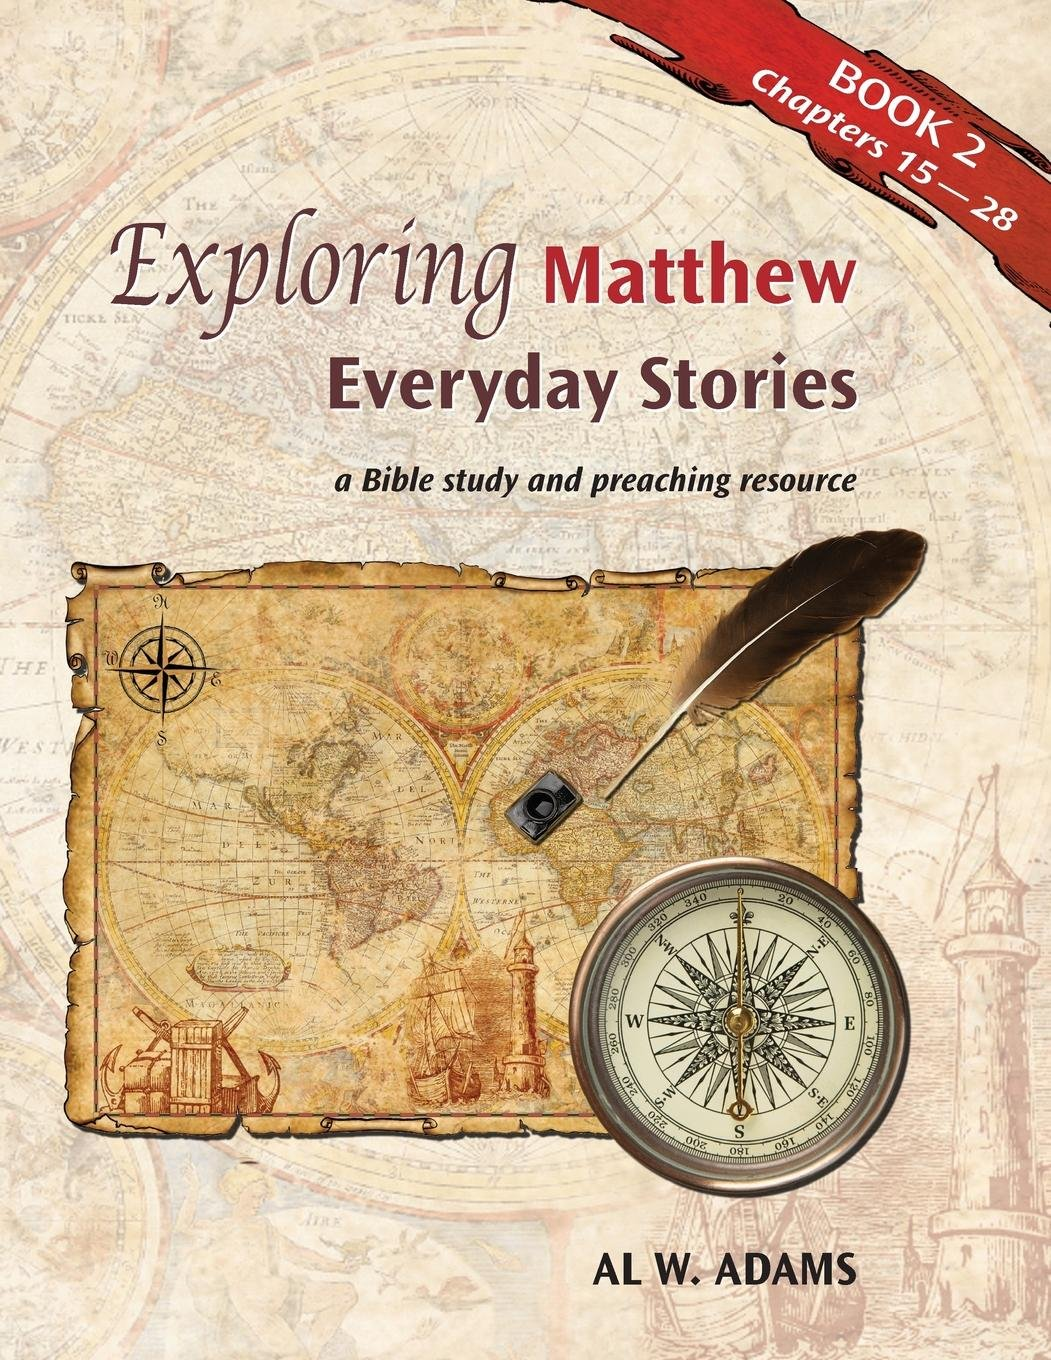 Exploring Matthew:: Everyday Stories: A Bible Study and Preaching Resource Book 2 (Exploring...Everyday Stories) (Volume 2) pdf